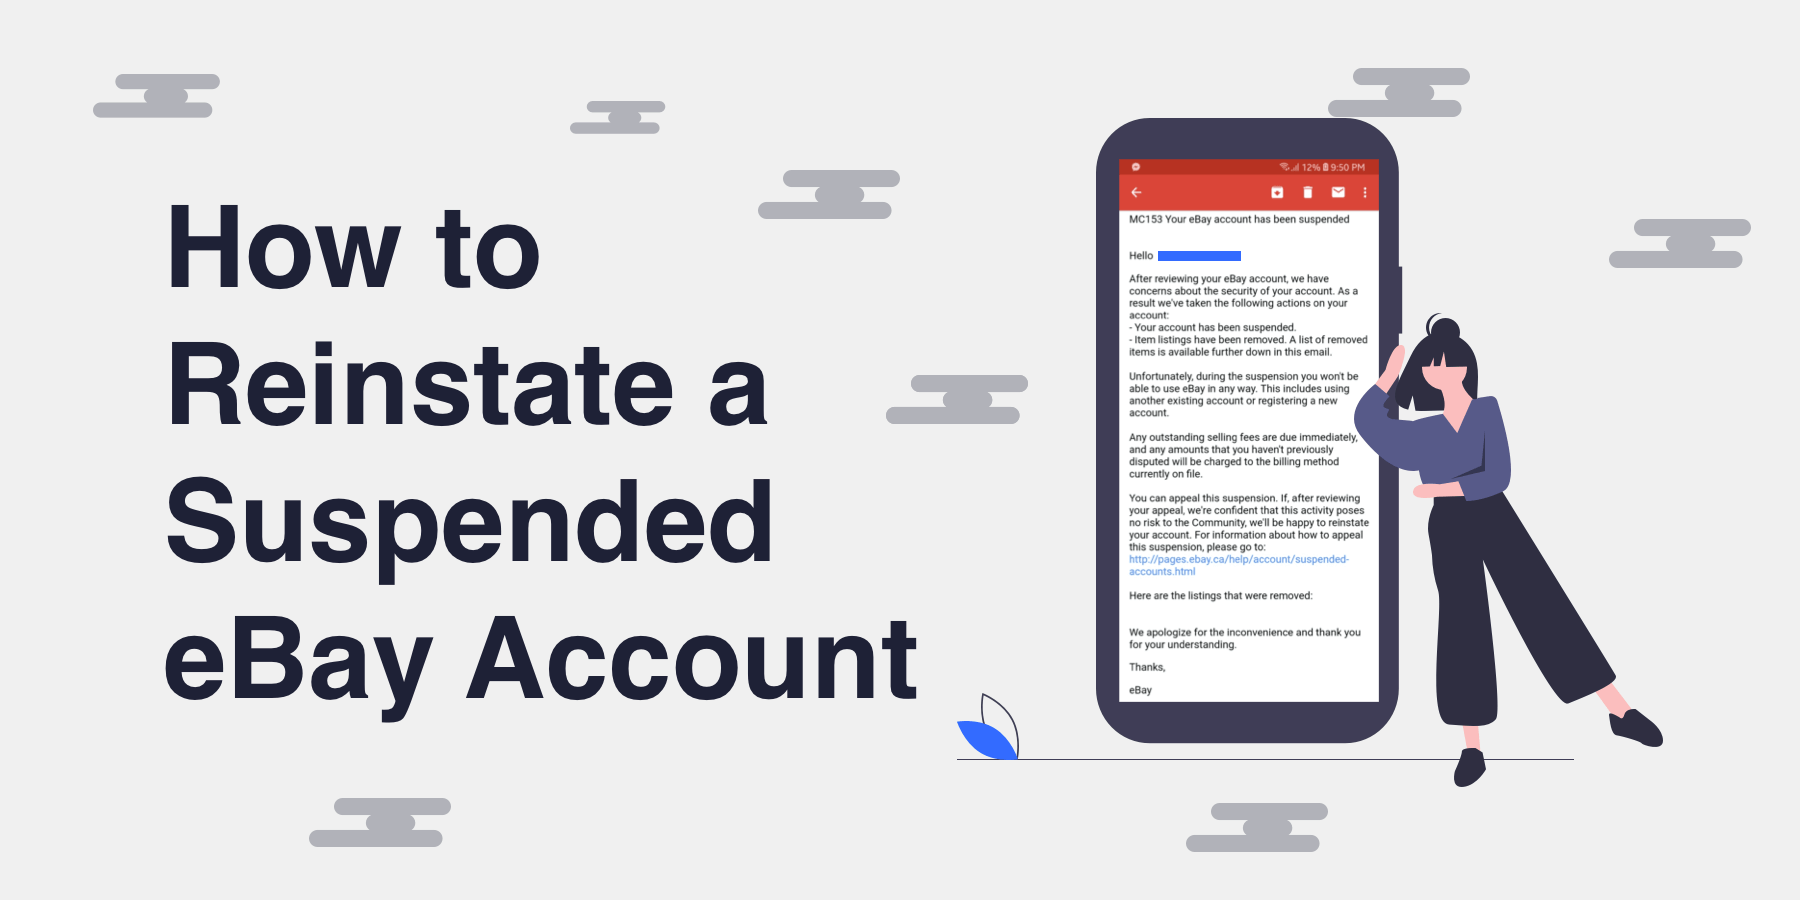 How to Reinstate a Suspended eBay Account